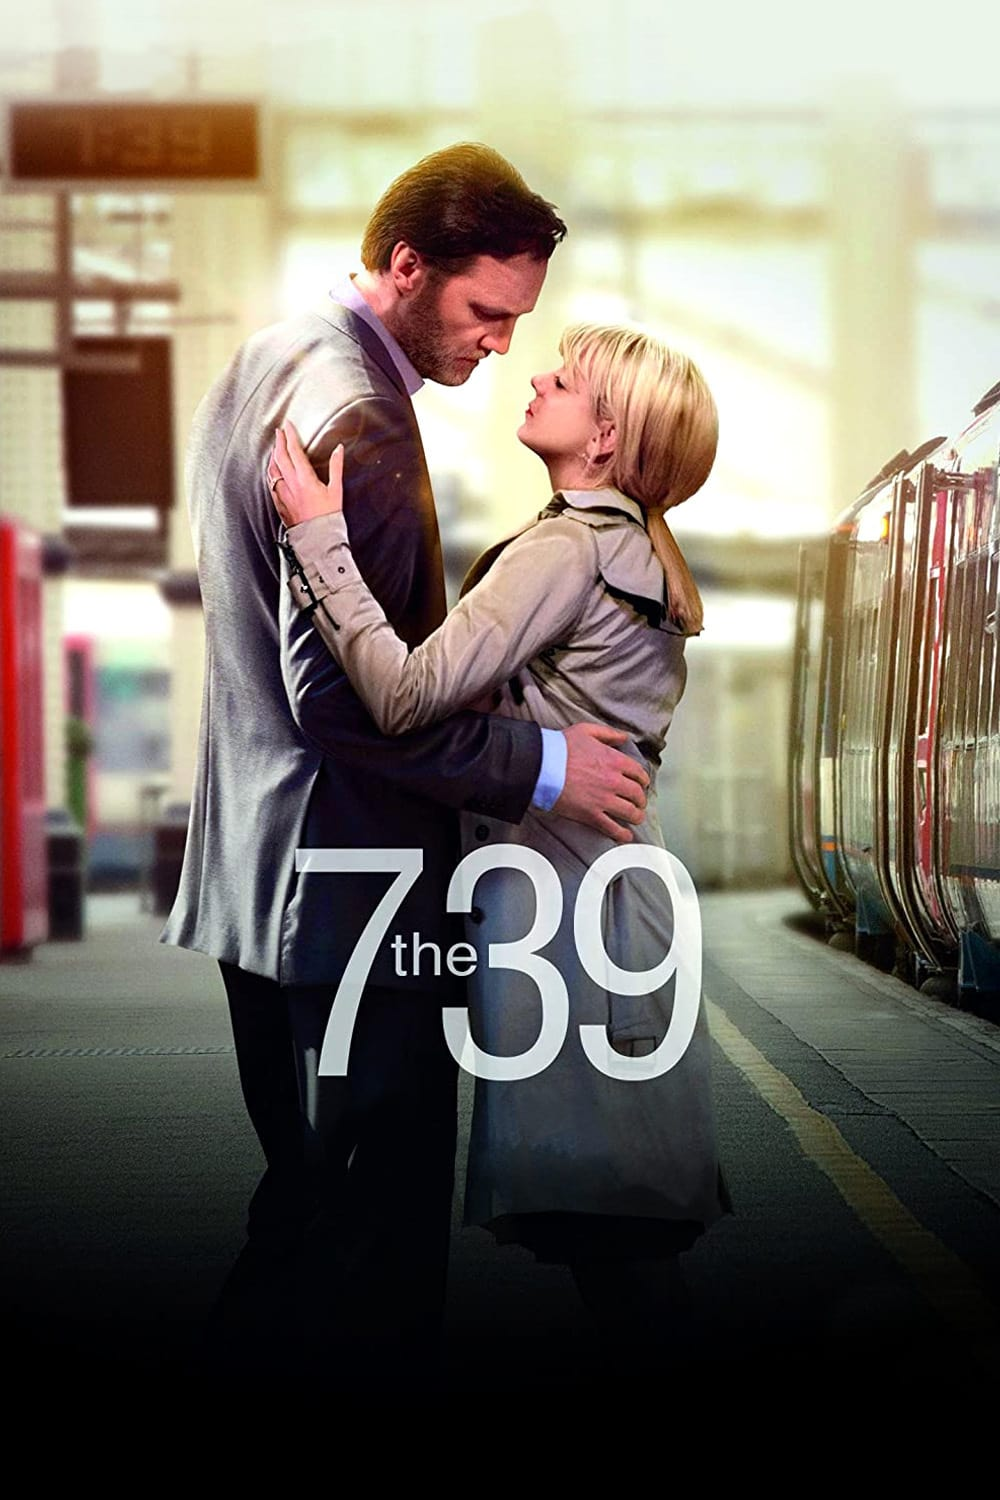 The 7.39' />